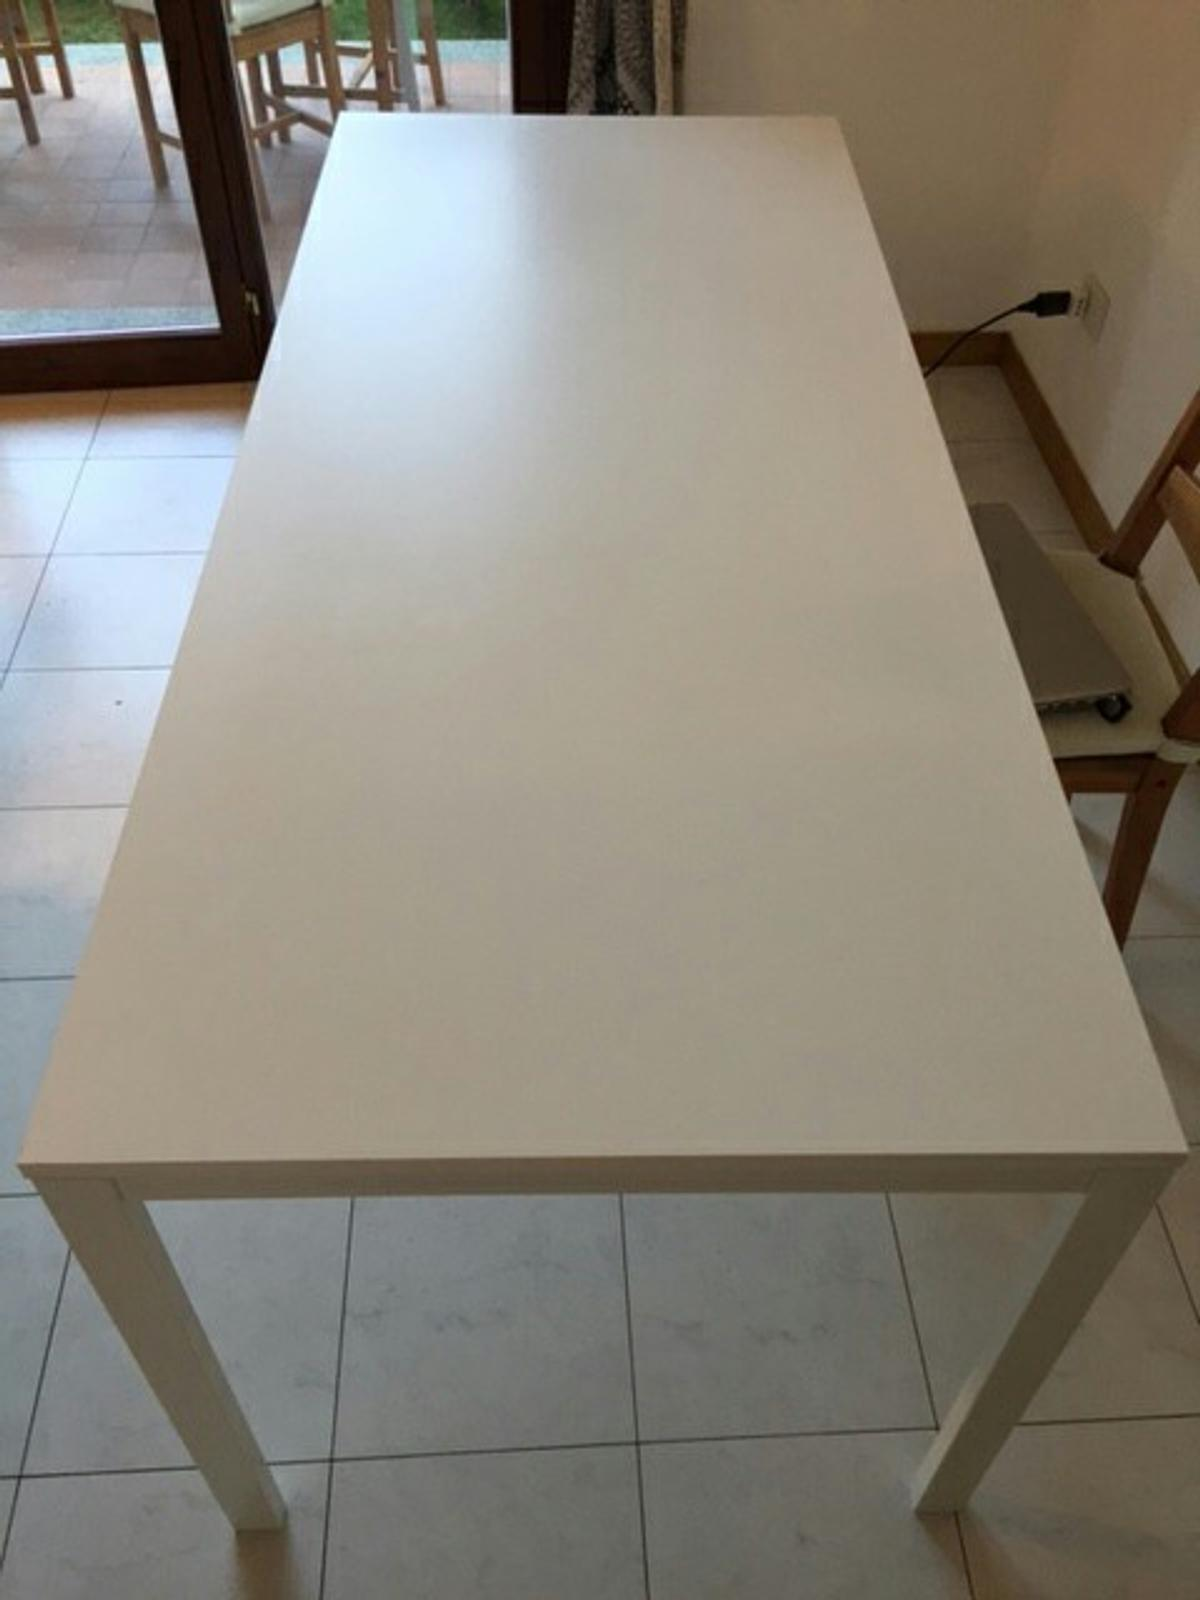 Tavolo Melltorp Ikea 175x75 In 21100 Varese For 40 00 For Sale Shpock